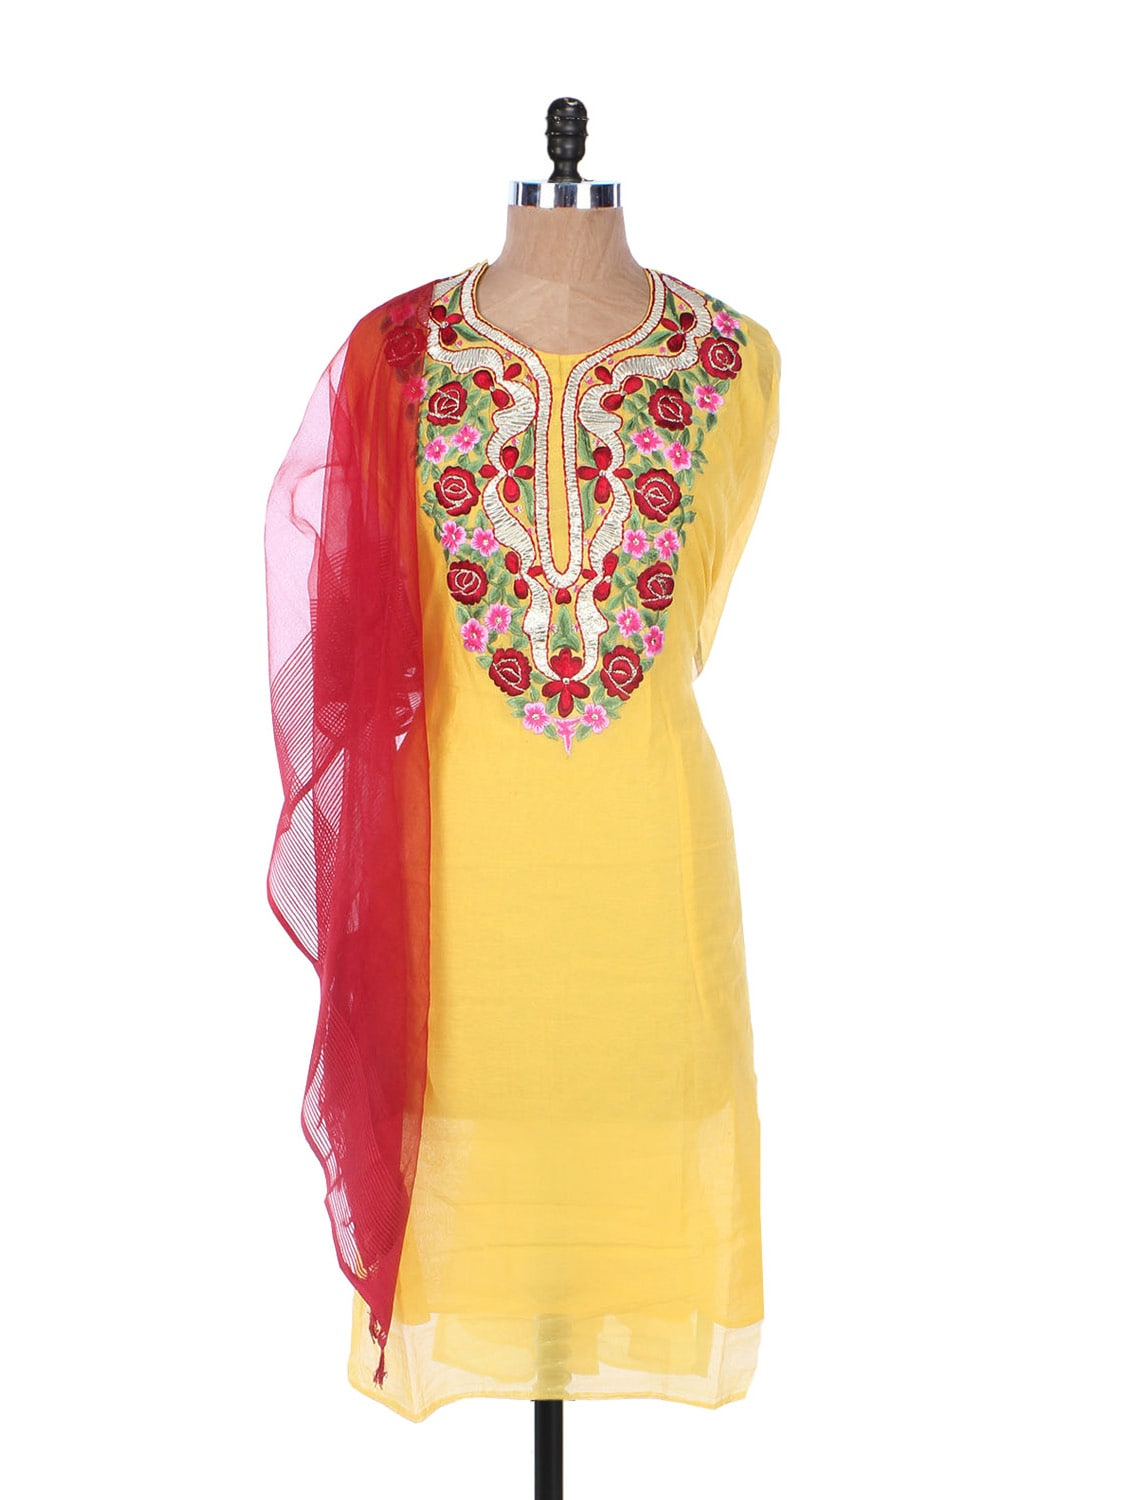 Yellow Linen Kurta With Pink And Red Embroidery On The Placket And Sleeves, Red Dupatta - Krishna's